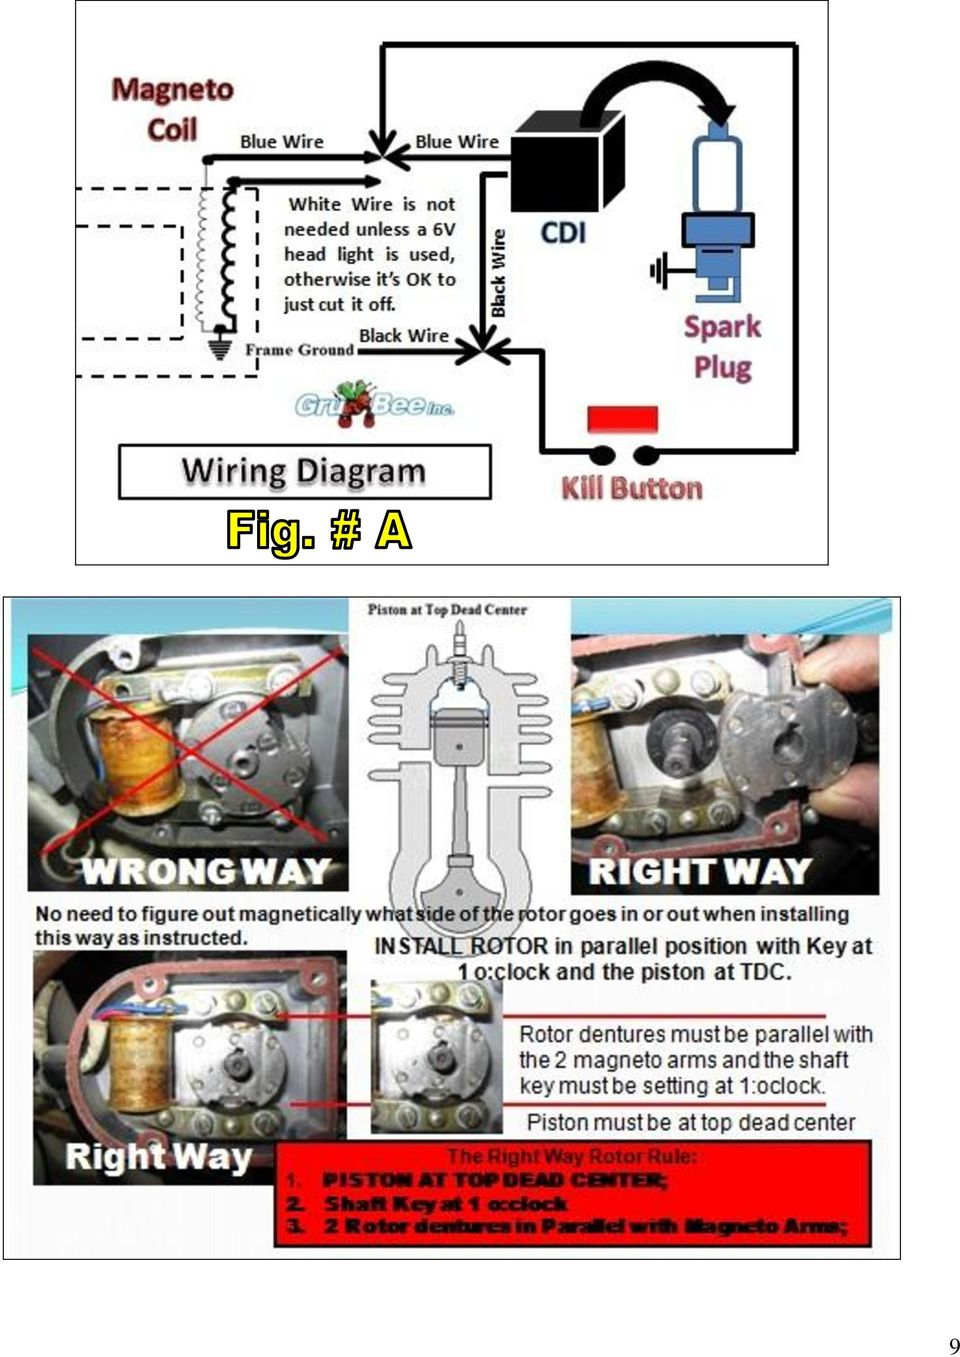 Yuandong Skyhawk Engine Parts Kit Pdf 2 Cycle Magneto Wiring Schematic 10